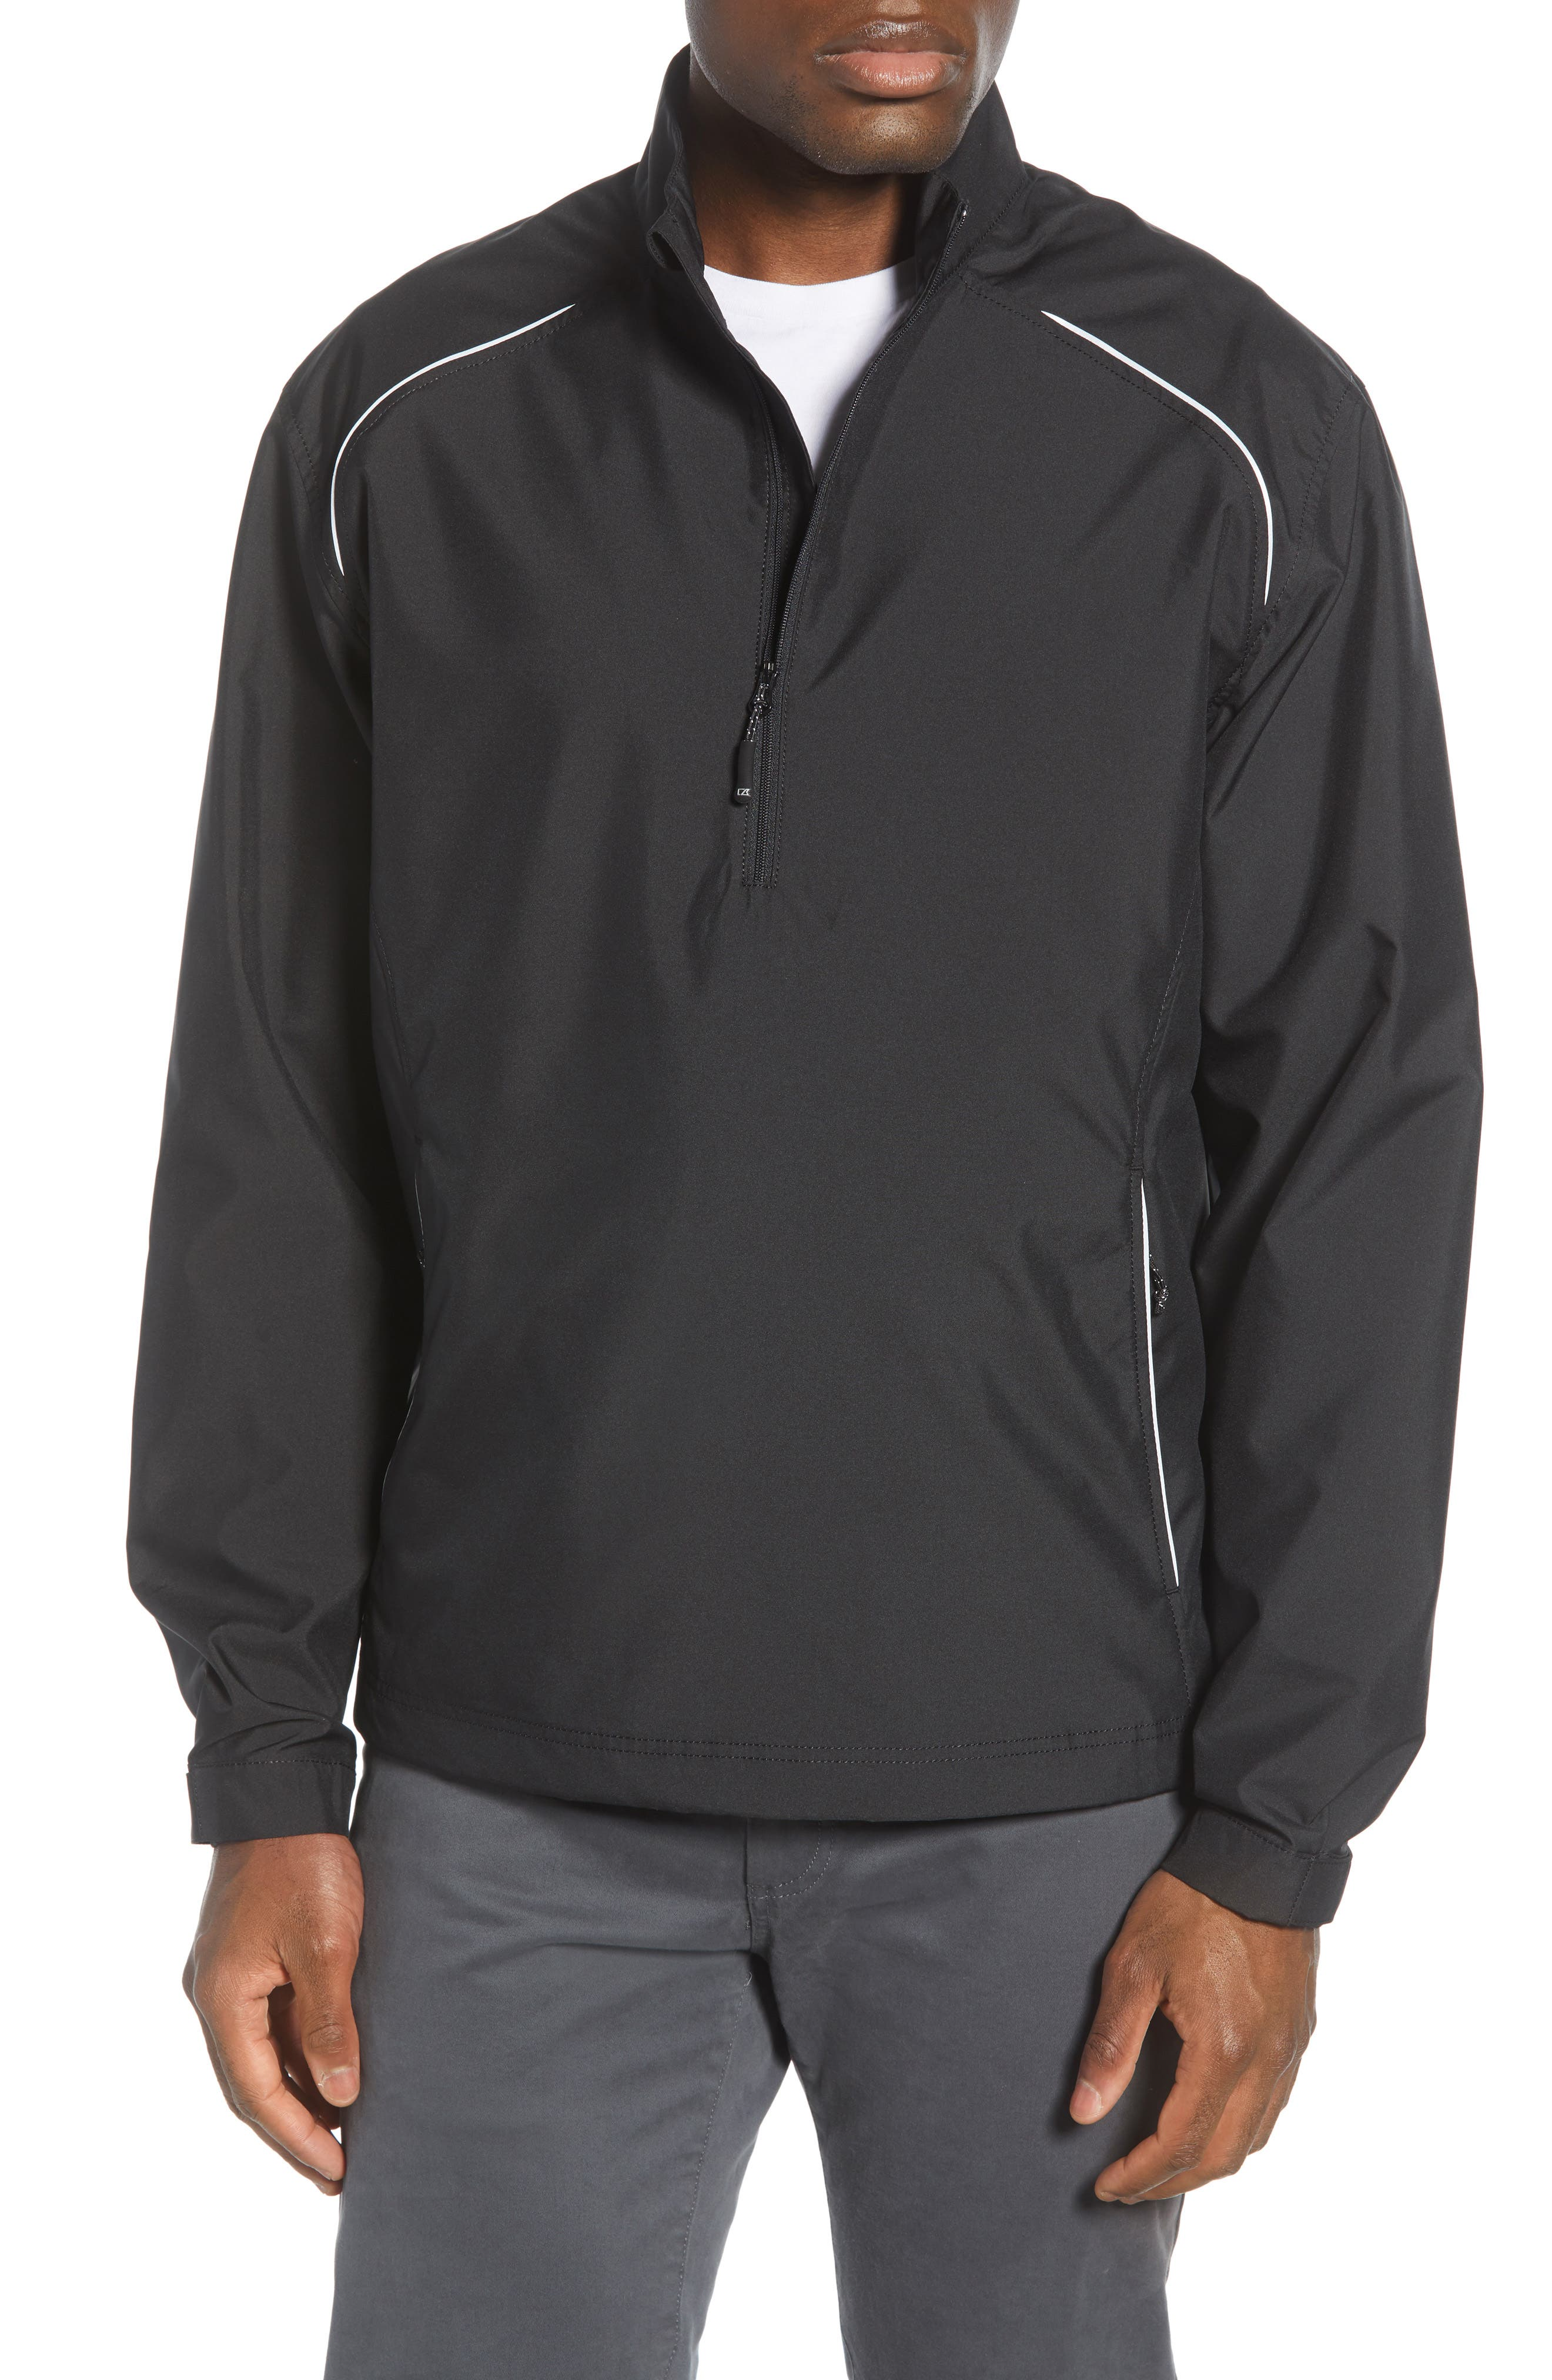 Smooth, lightweight, wind- and water-resistant fabric composes a breathable, high-performance jacket styled with a half-zip closure and a bold mock neck. Adjustable hook-and-loop cuffs and an adjustable drawcord hem ensure a custom fit, while reflective trim keeps you visible in low-light conditions. Style Name: Cutter & Buck \\\'Weathertec Beacon\\\' Water Resistant Half Zip Jacket (Big & Tall). Style Number: 877279. Available in stores.